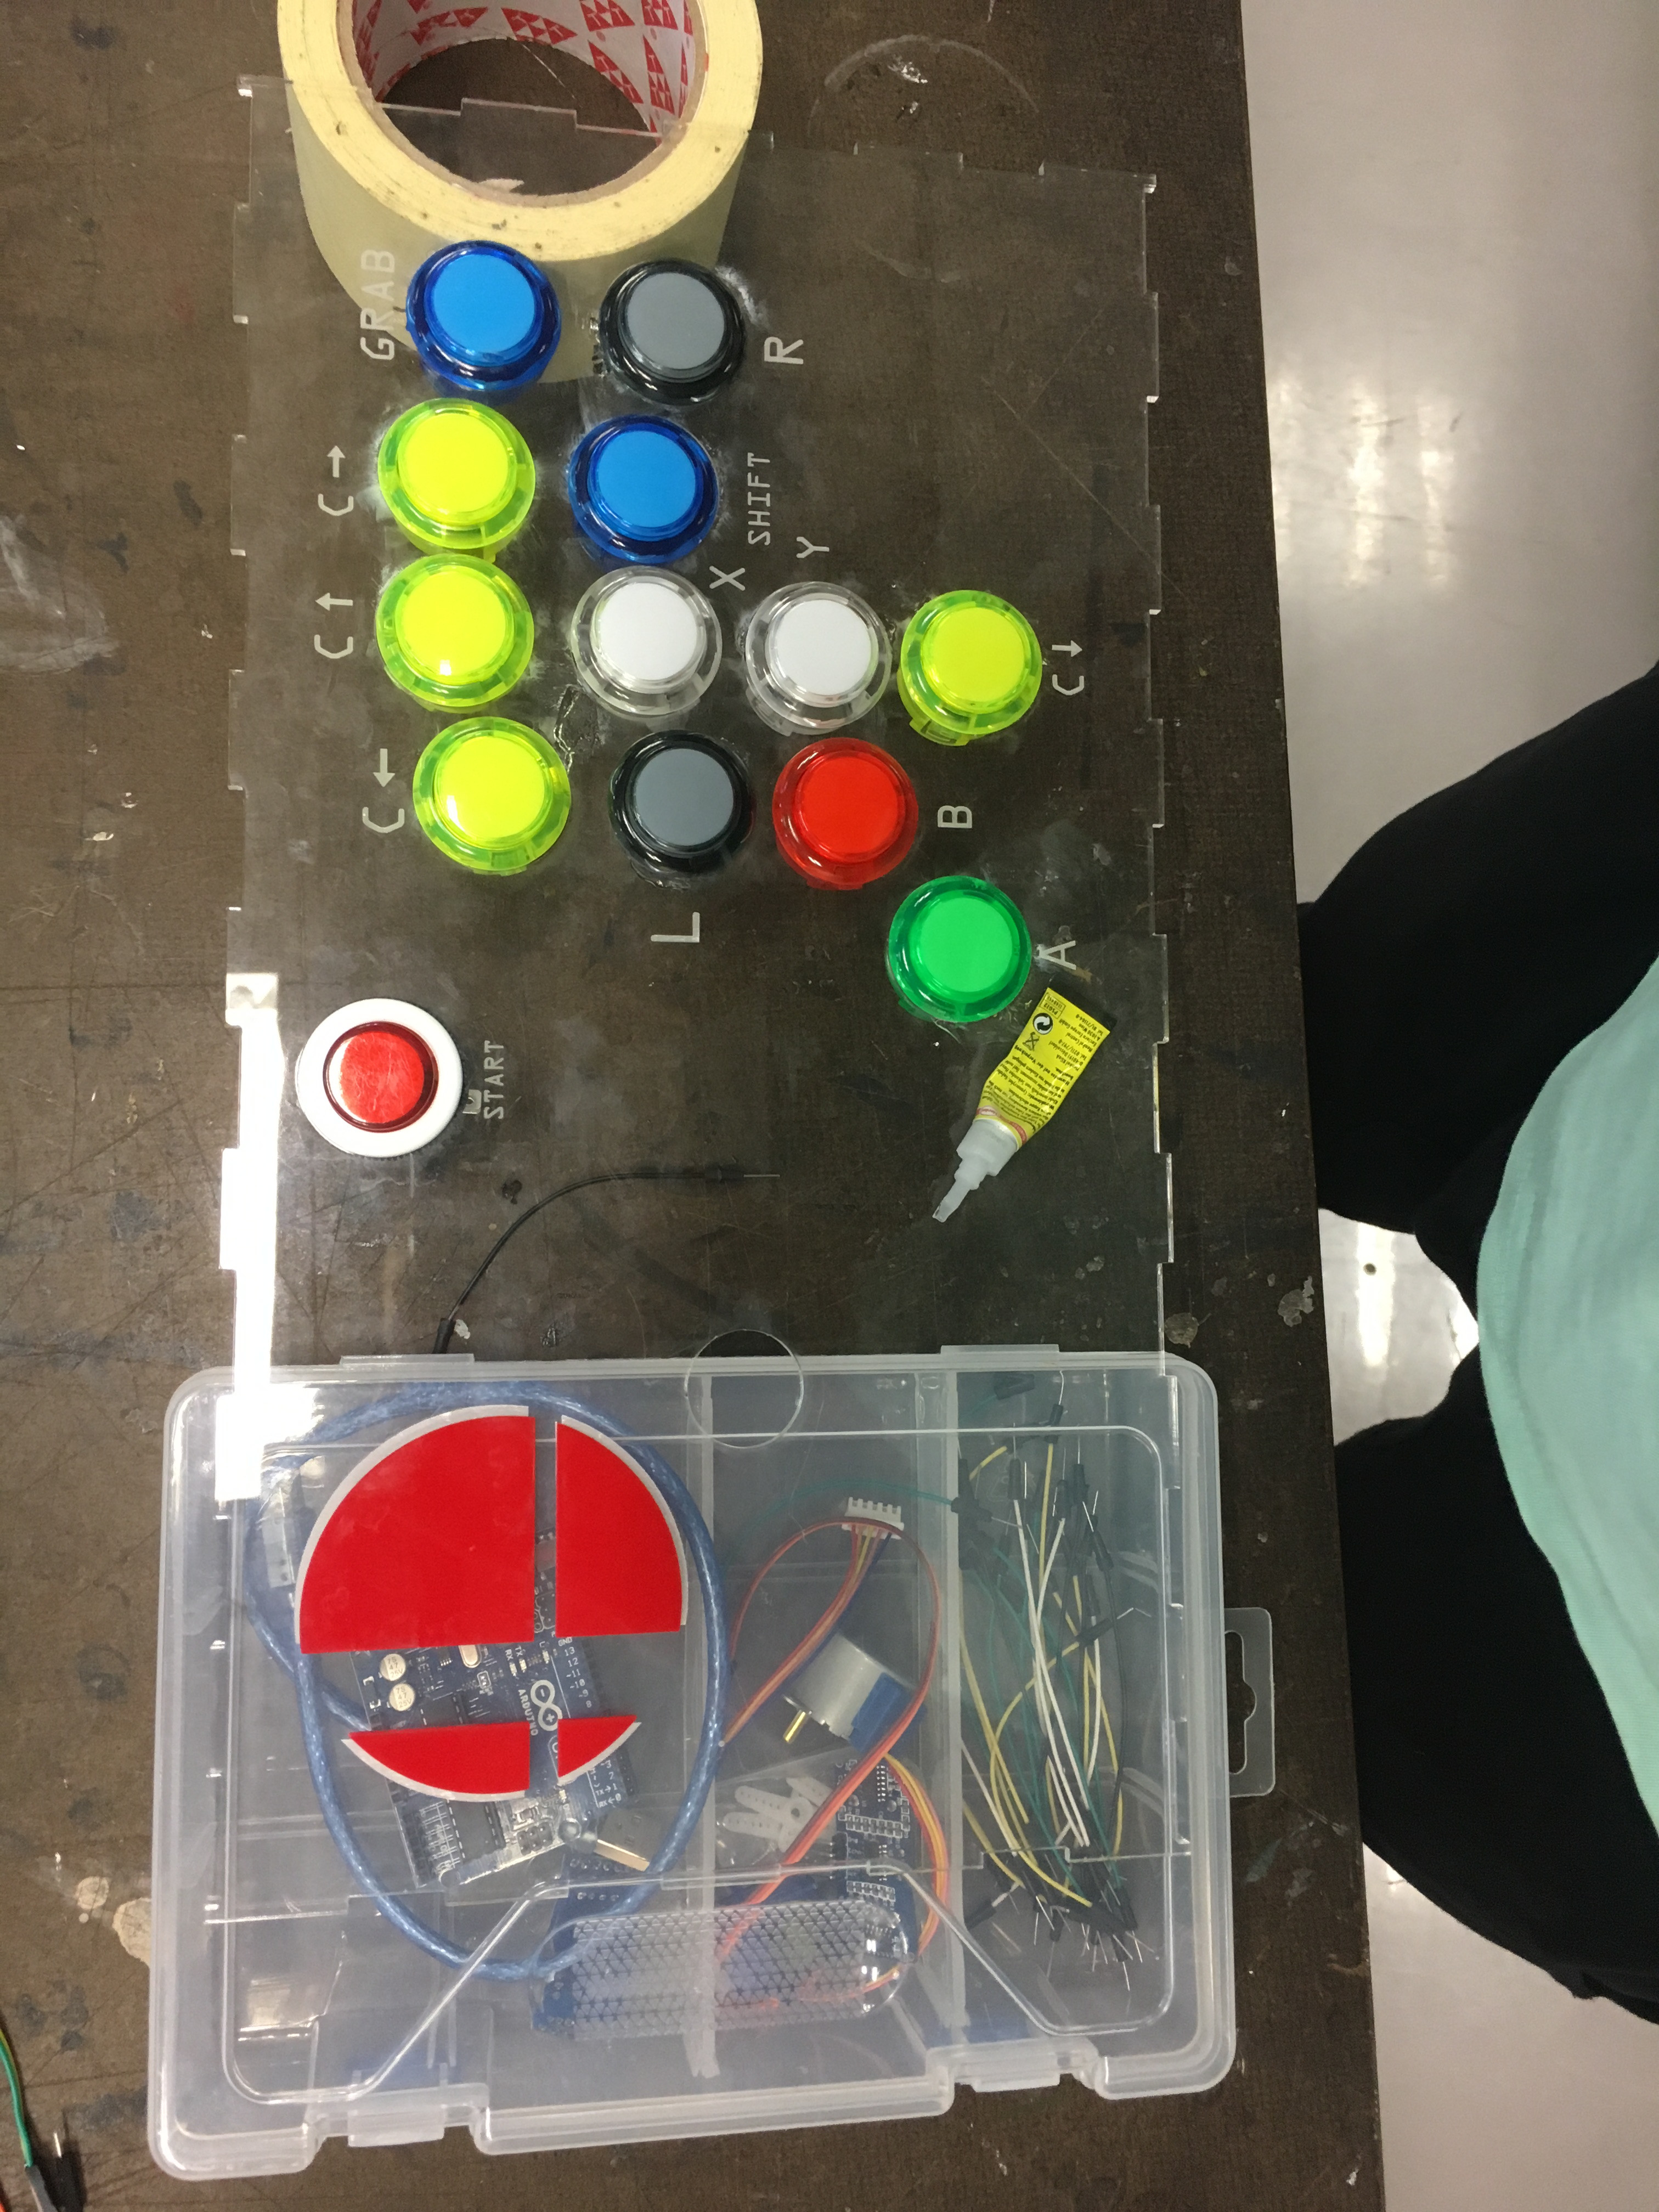 Next I added in the buttons to the faceplate to see what it looked like. Each button goes to a button on a gamecube controller. I went through a few different button layouts before deciding on a final design.